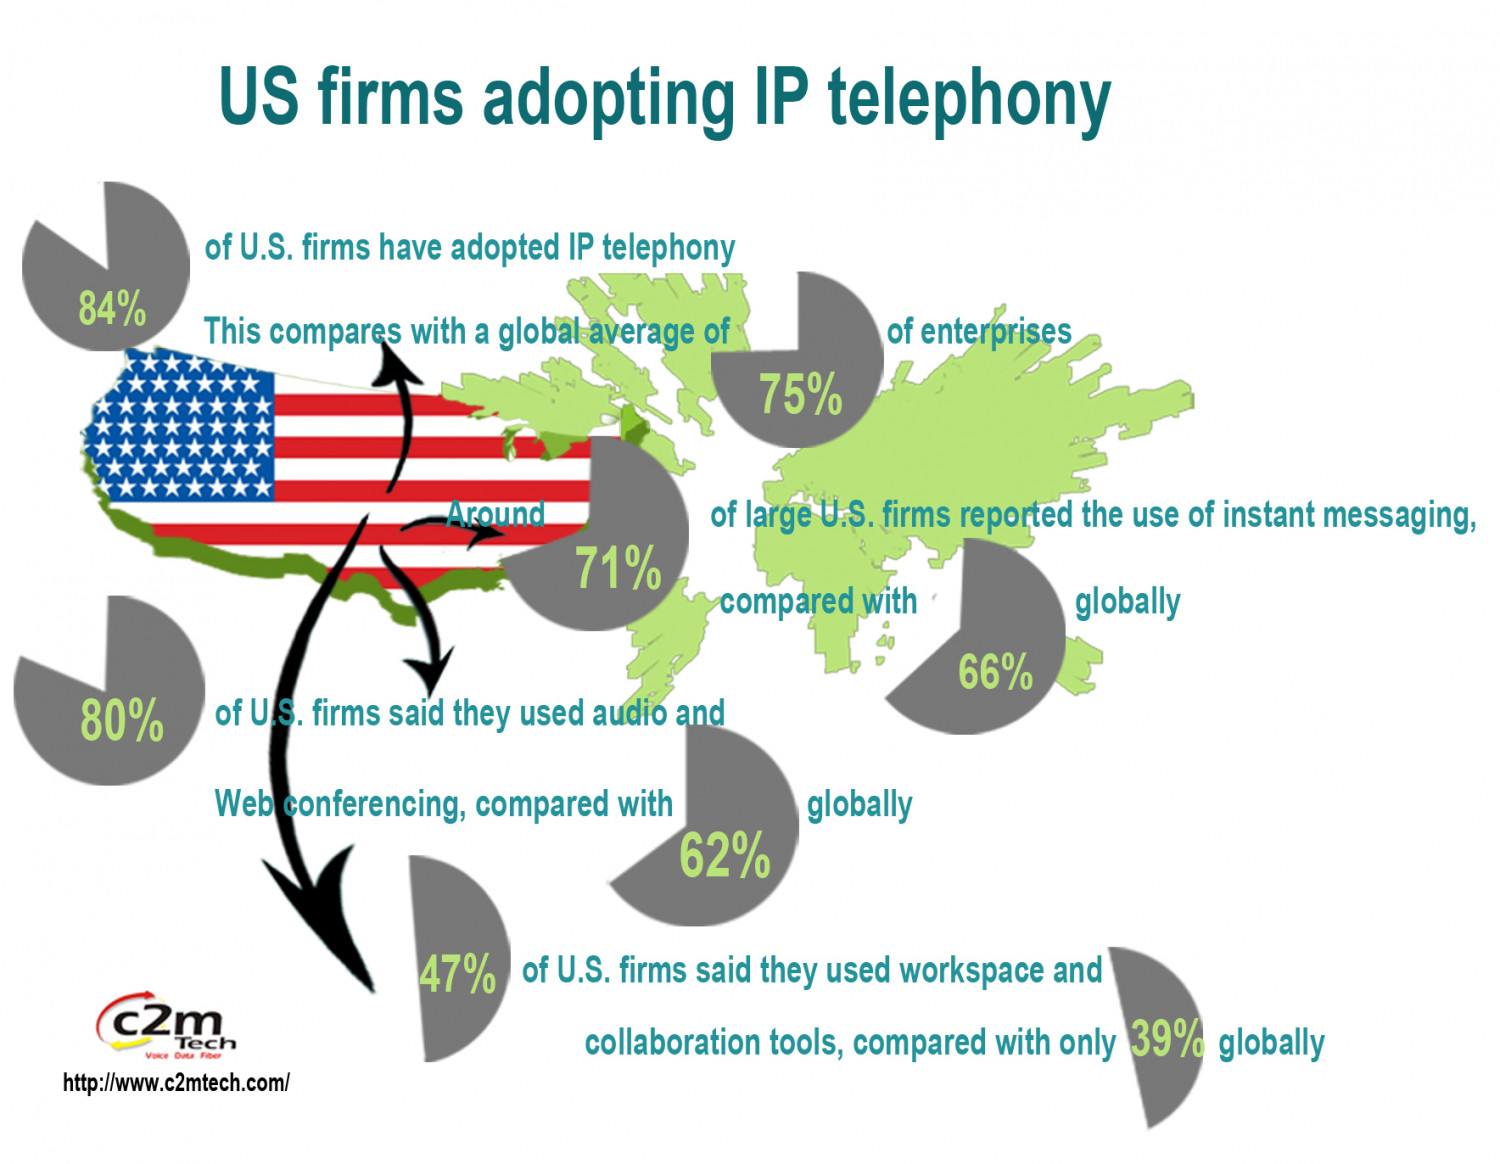 US firms adopting IP telephony Infographic